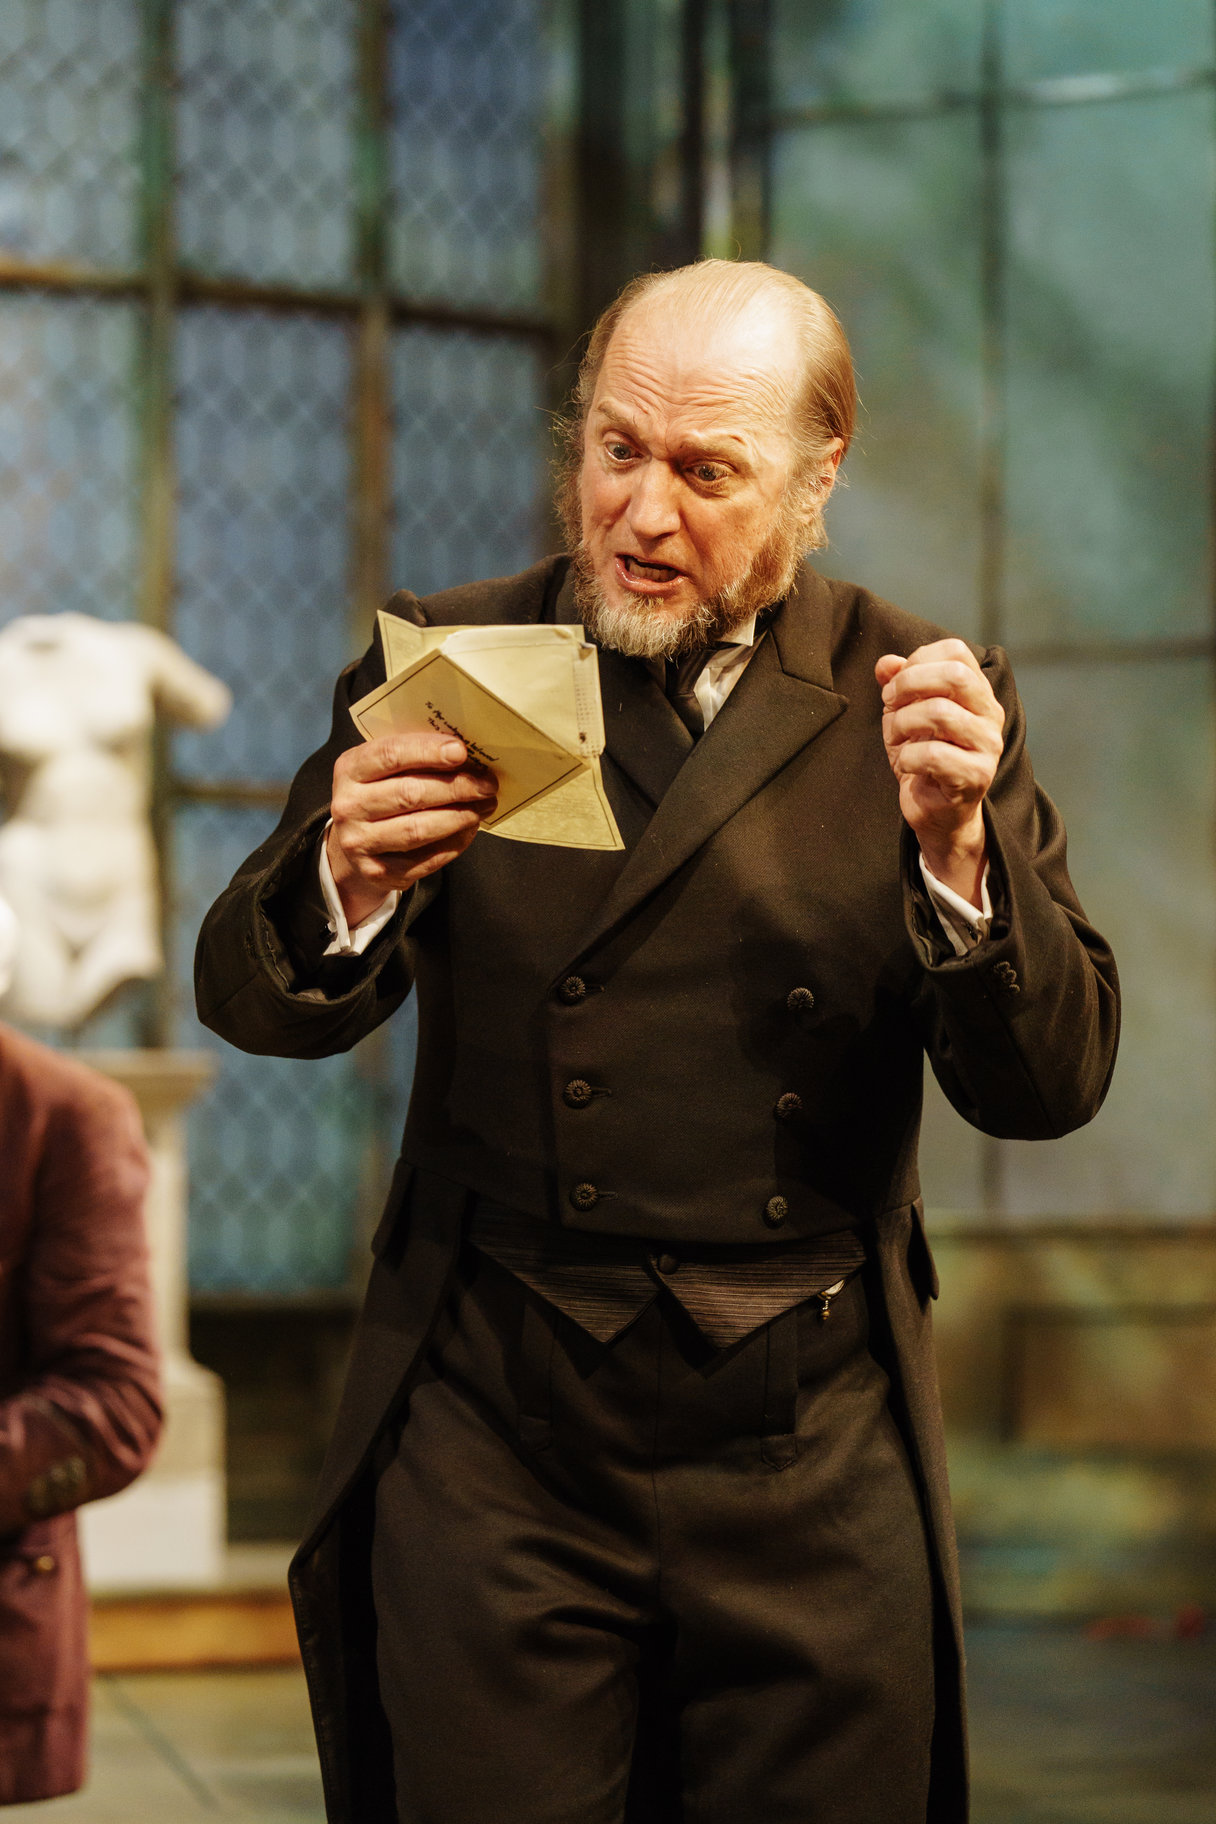 Ade Edmonson as Malvolio. He is standing reading a letter.